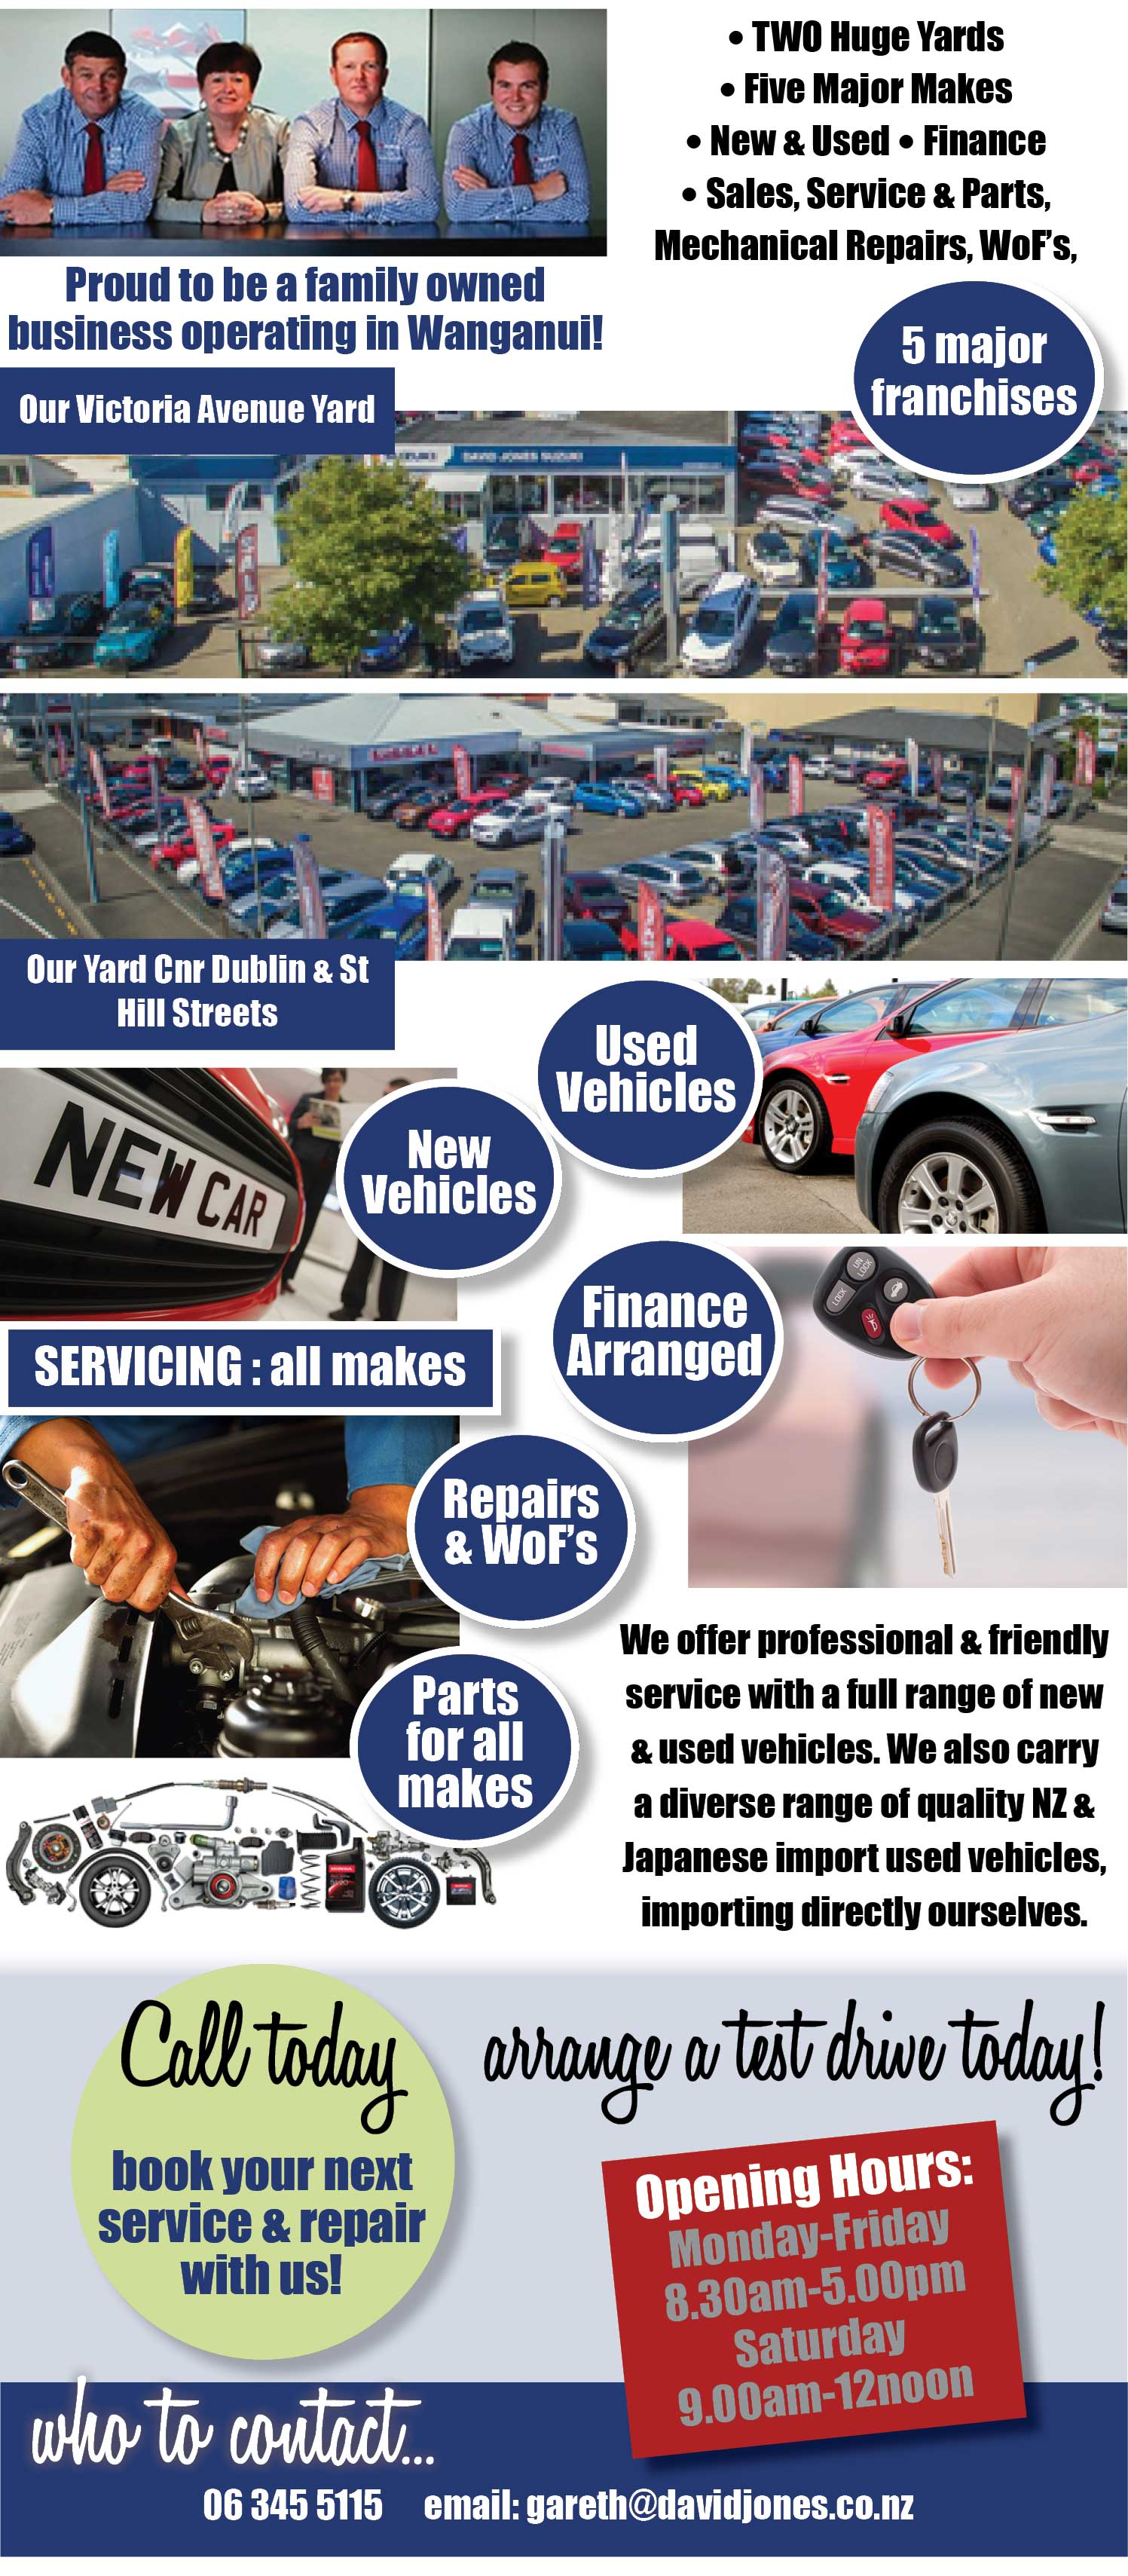 A family owned business in Wanganui and the greater Wanganui District. New and Used car sales. Service, repairs & WoF's, finance arranged, parts for all makes. David Jones Motors has 2 yards in Wanganui. New Cars. Used Cars.